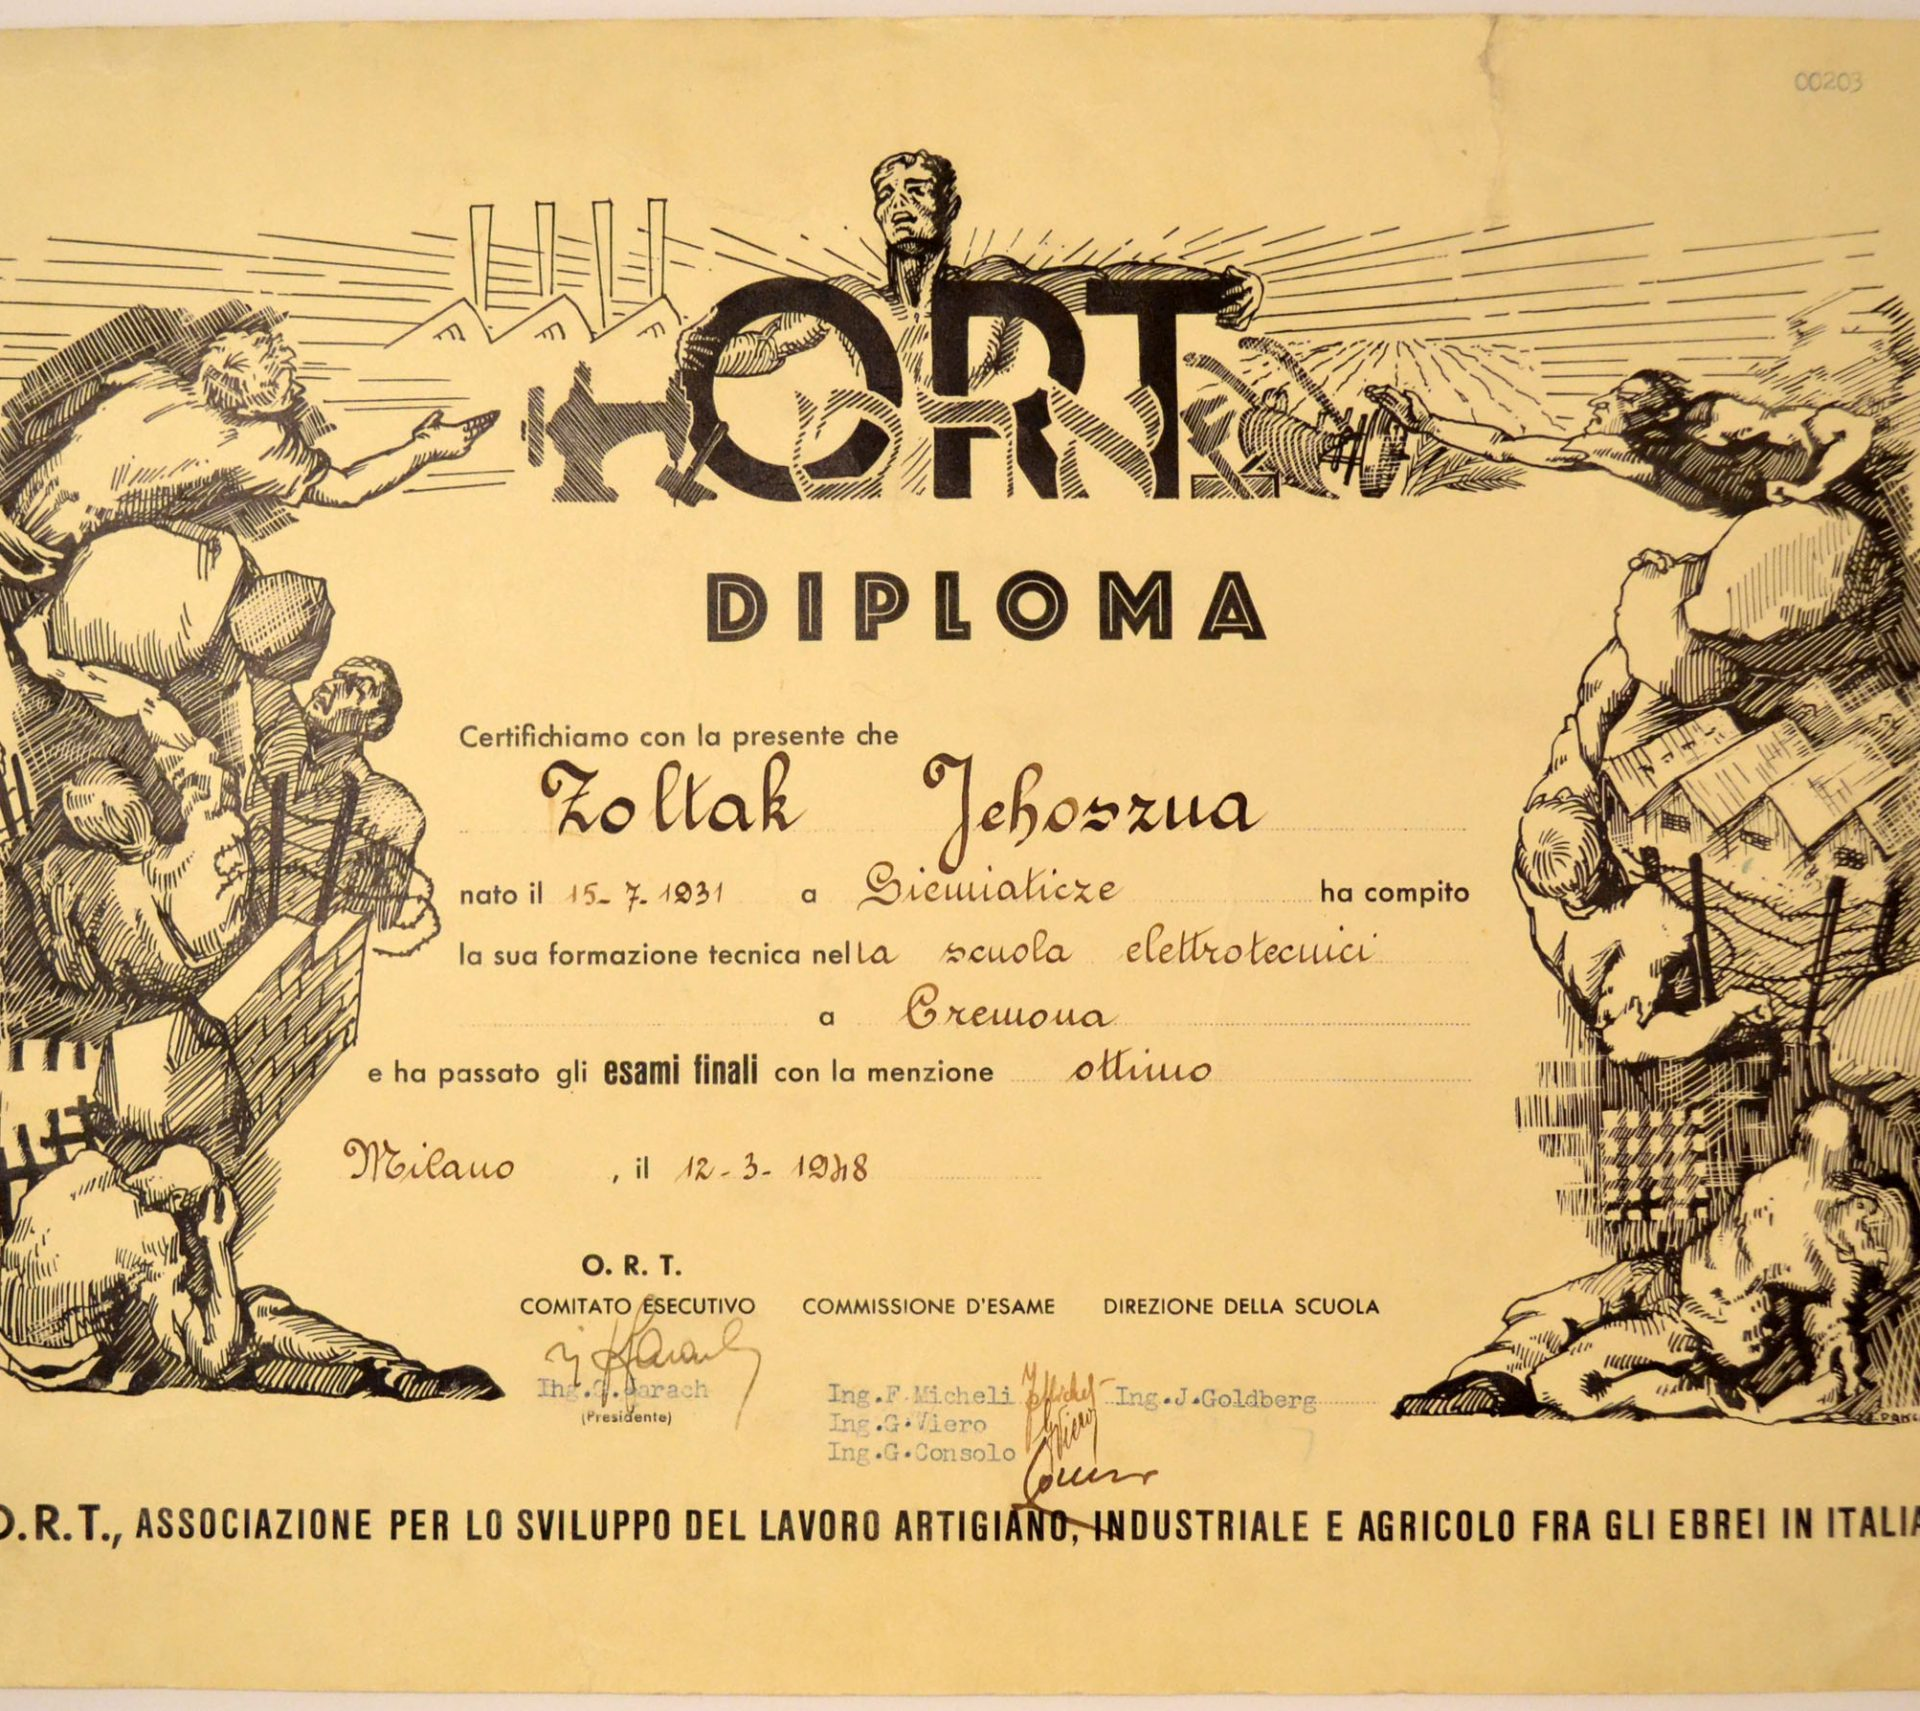 ORT diploma written in Italian on March 12, 1948. It was presented to Jehoszua (Sidney) Zoltak for his completion of an electrician course in the Cremona (Italy) displaced persons camp.